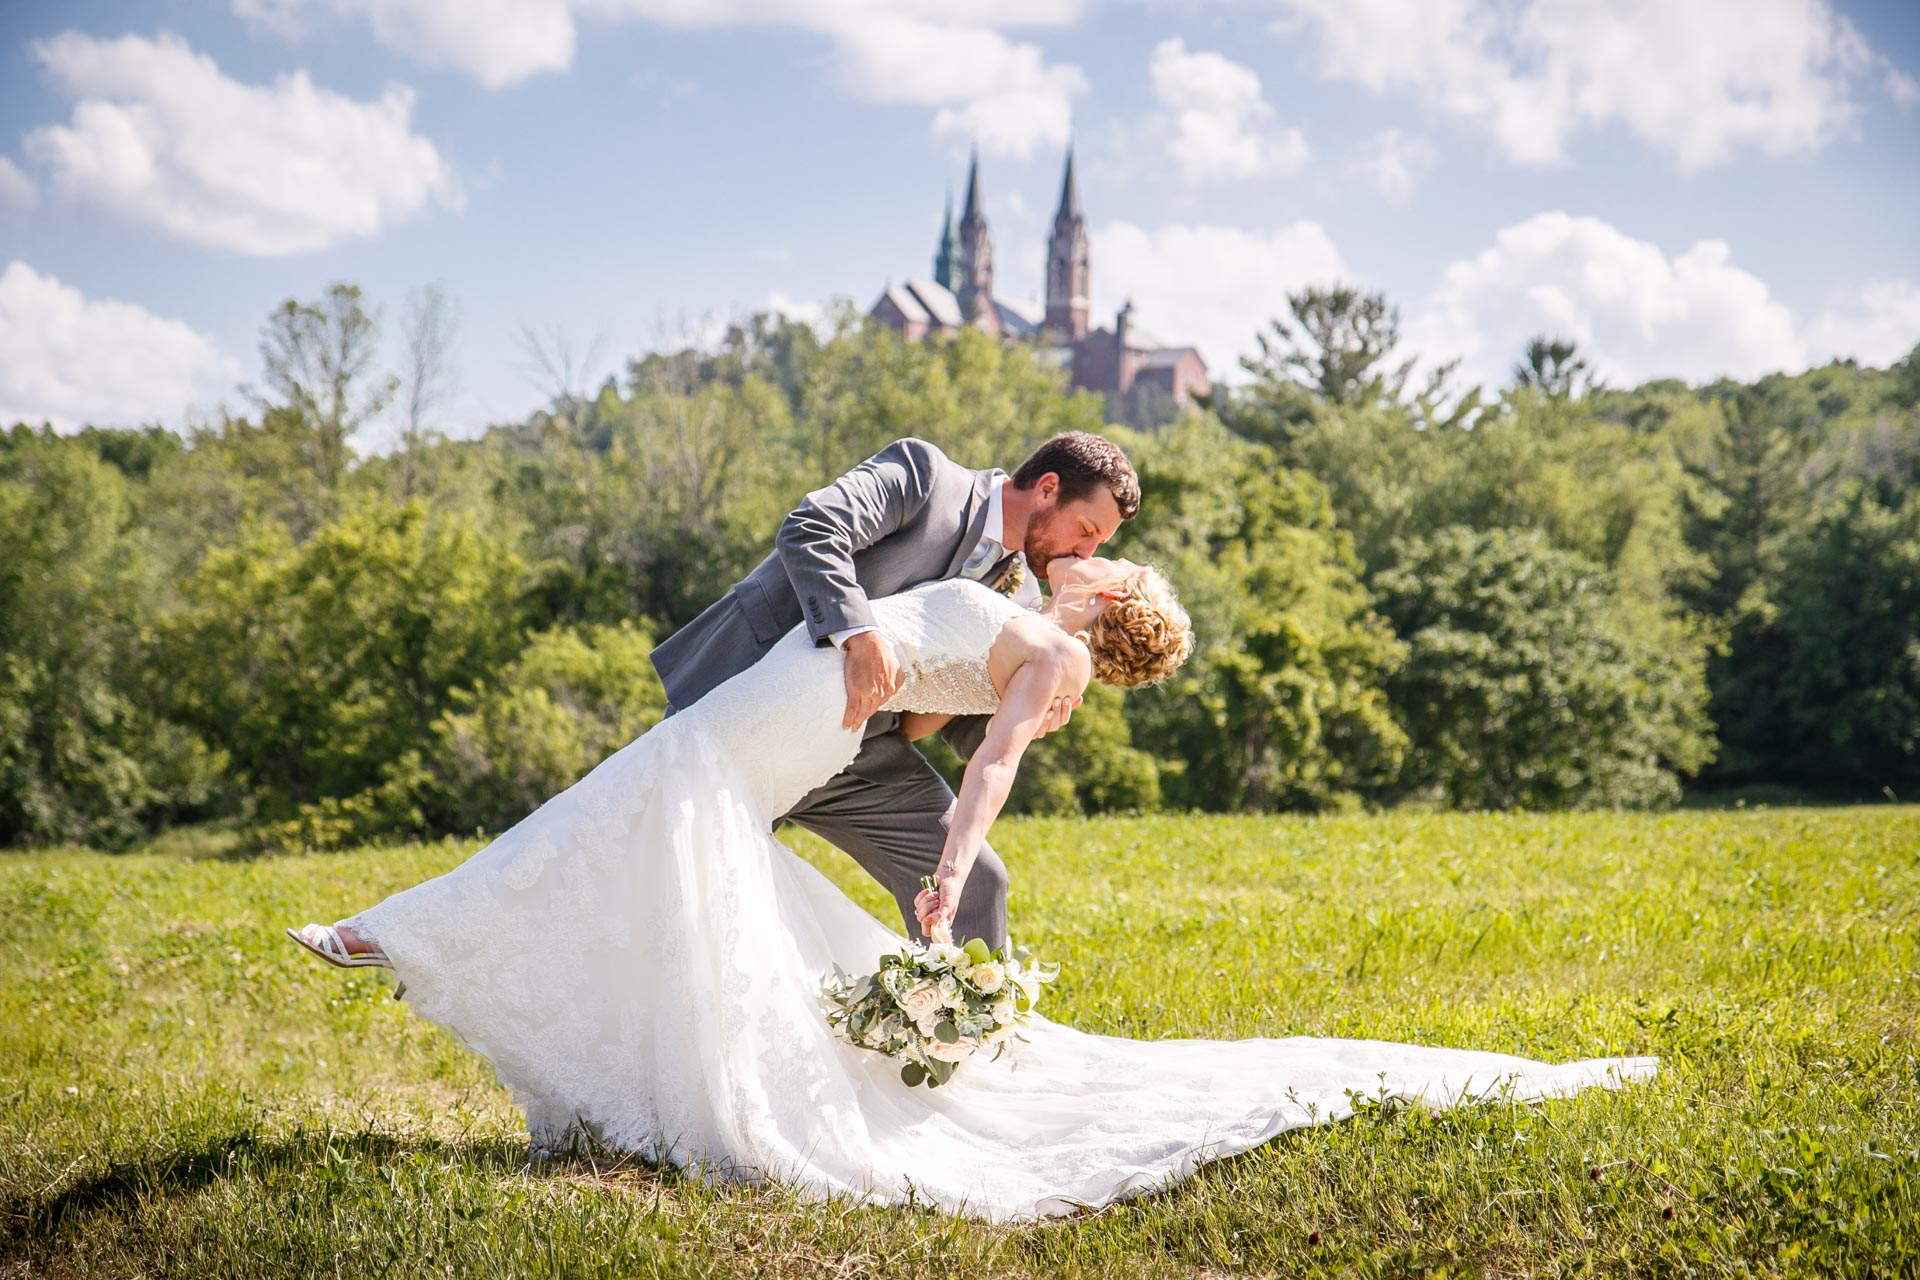 Diana and Adam were wed at St. Joan of Arc Church with a reception at Terrace 167 in Richfield, Wisconsin. Adam Shea Photography captured the event.